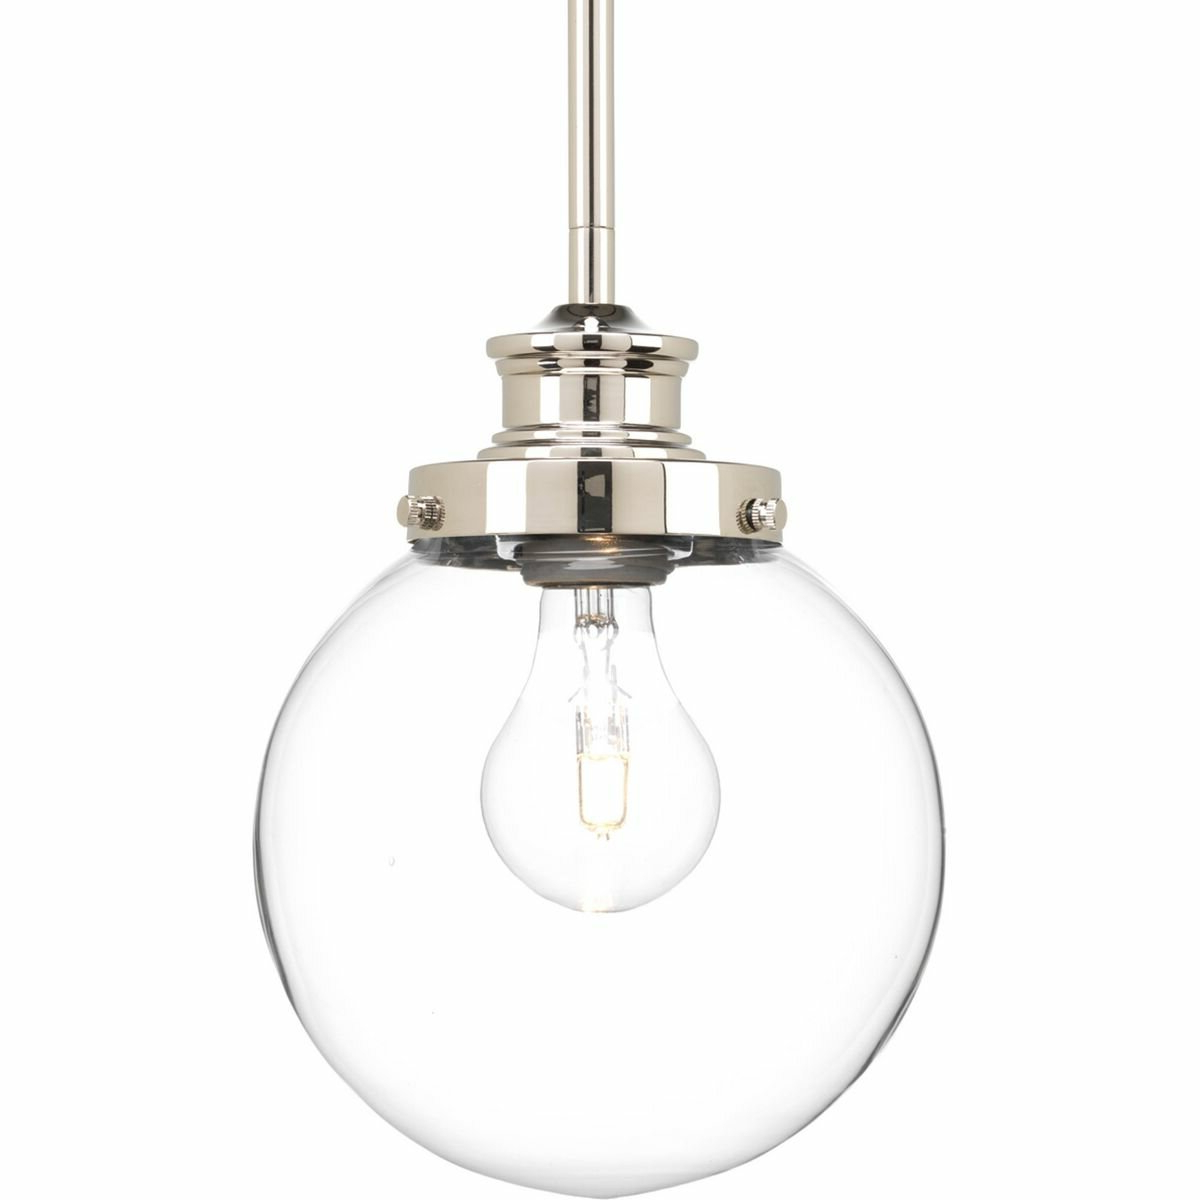 Cayden 1 Light Single Globe Pendant Throughout Well Known Betsy 1 Light Single Globe Pendants (View 12 of 20)